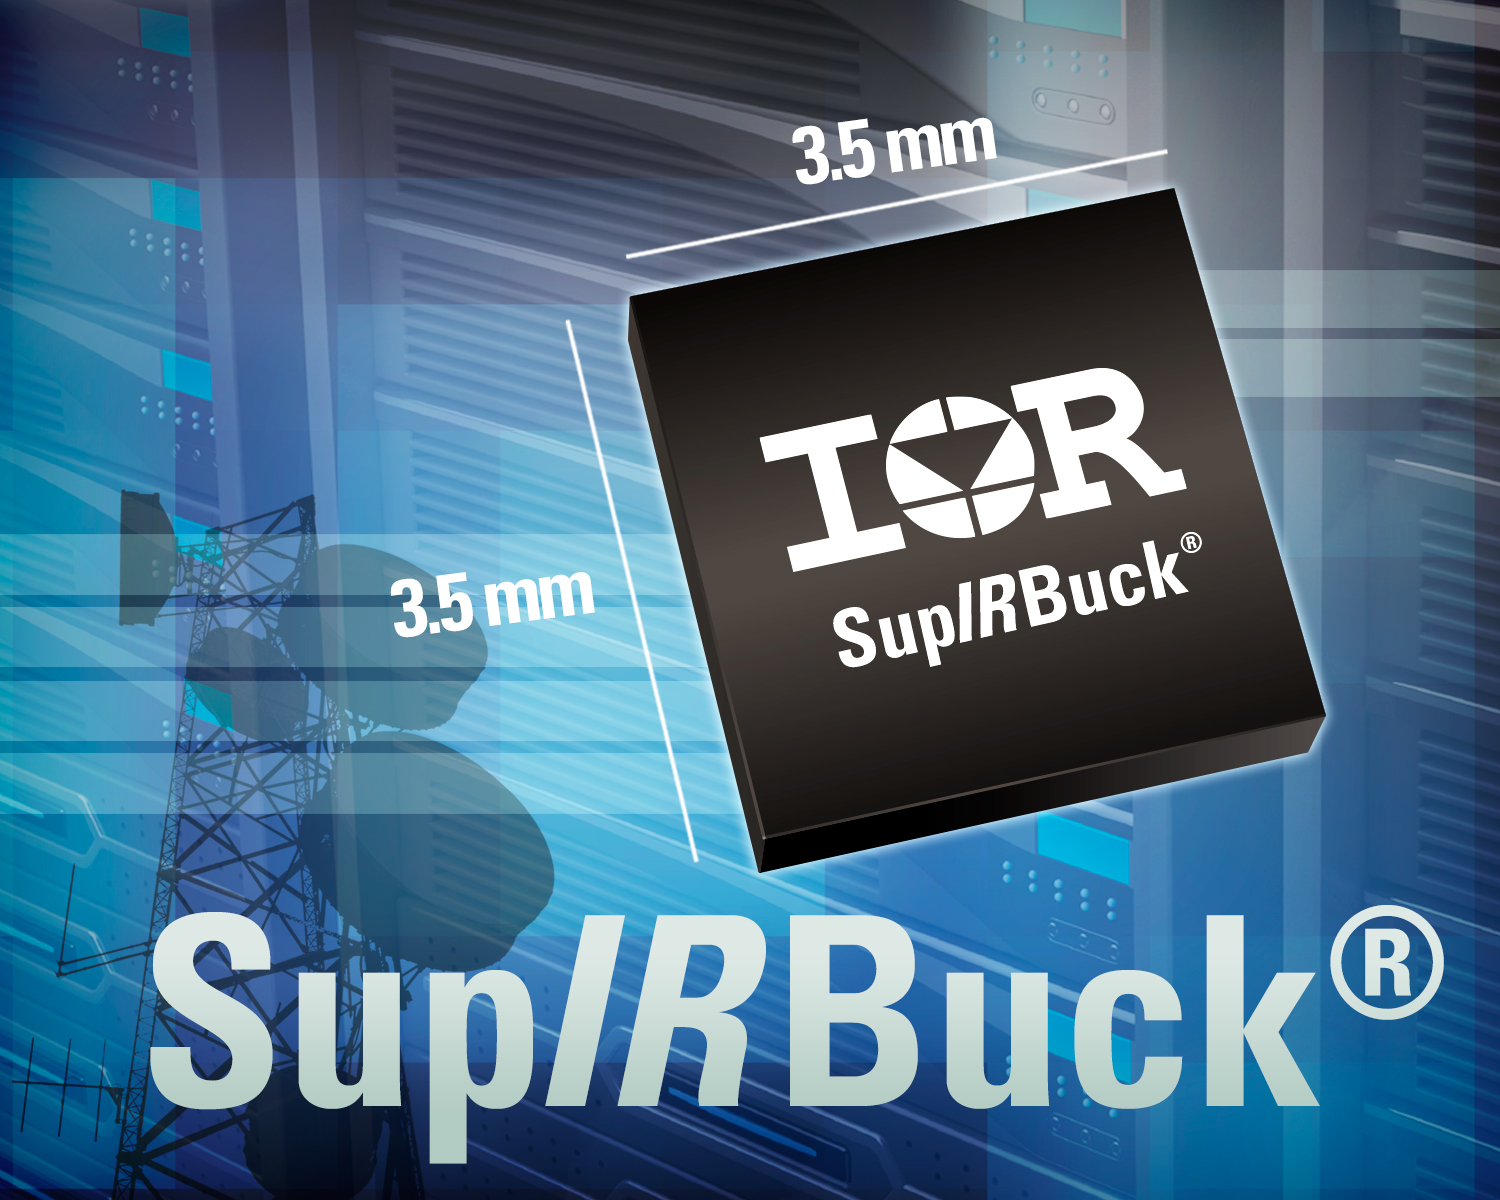 Irs Ir3823 3a Supirbuck Integrated Voltage Regulator Delivers 975 Switching Pr130808